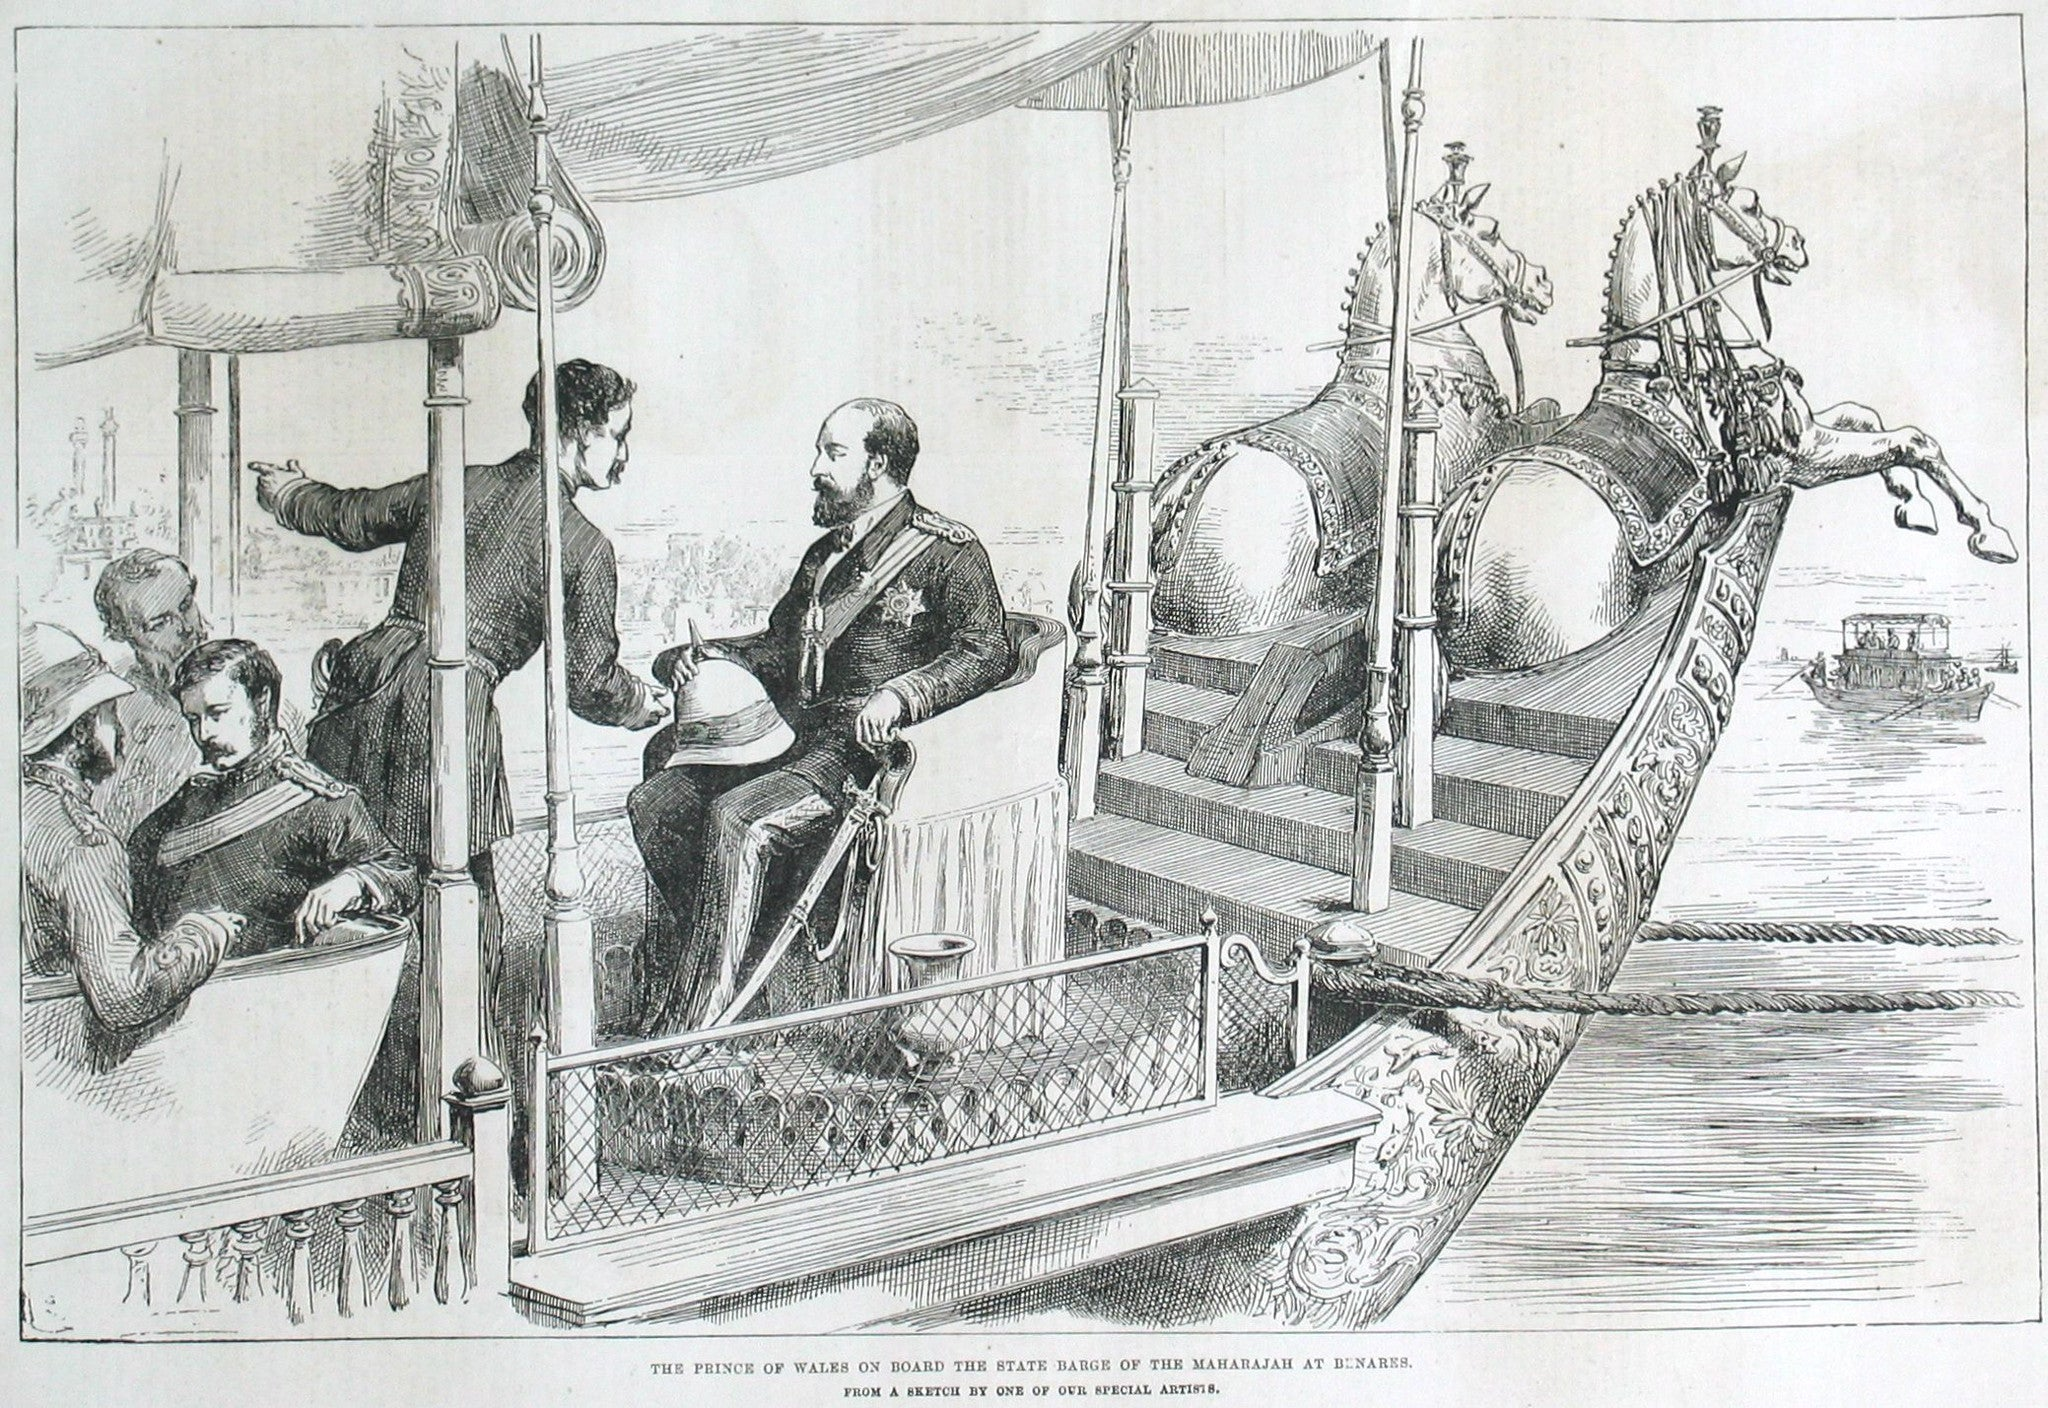 The Prince of Wales on board the state barge of the Maharajah at Benares.